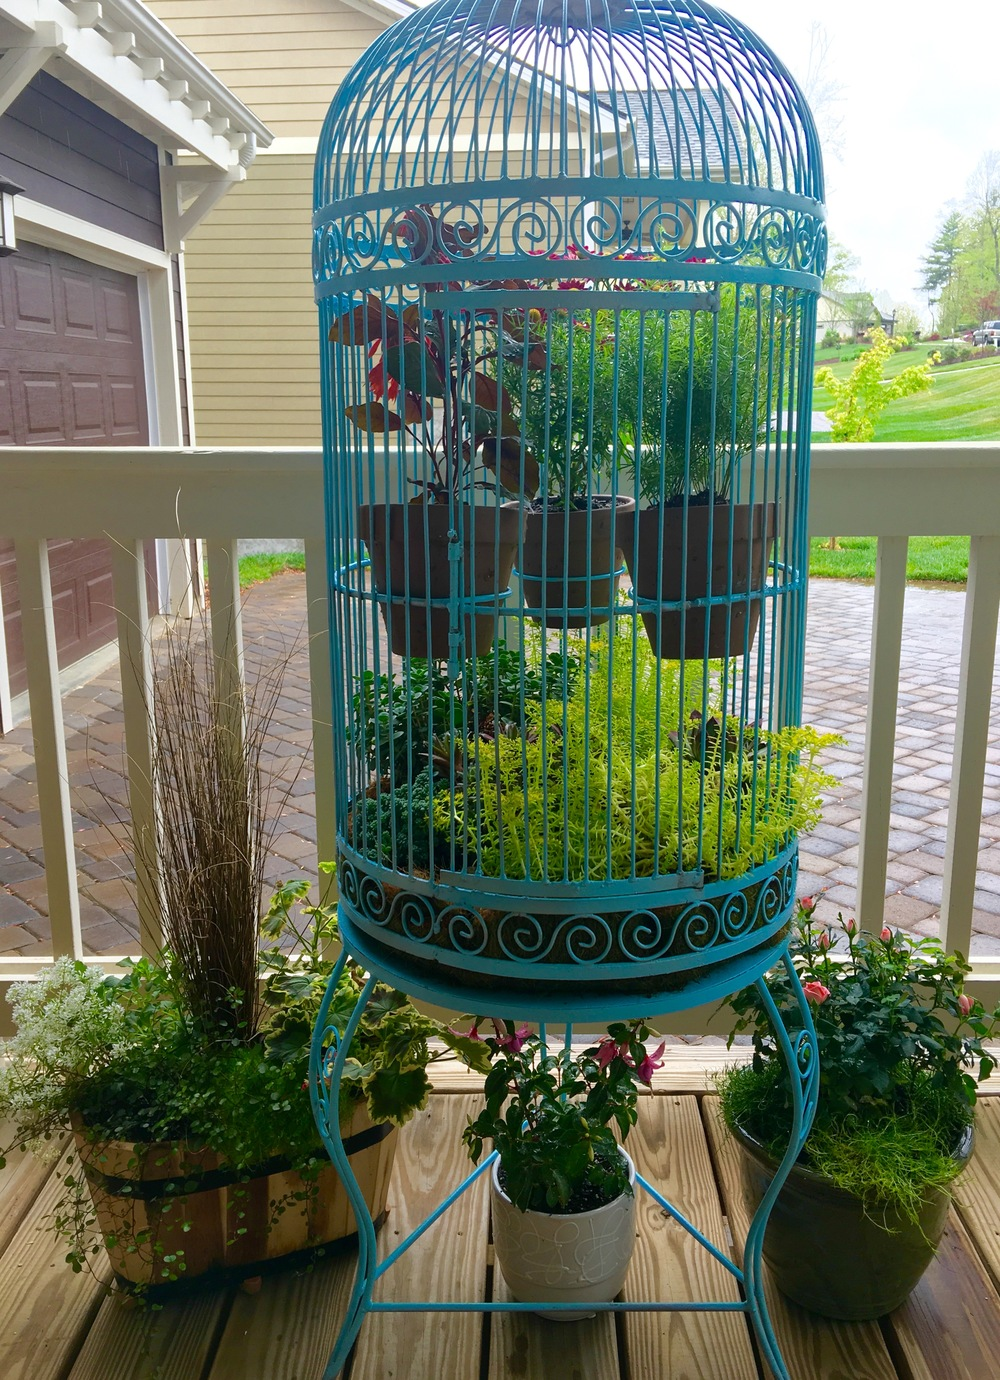 Antique birdcage used for succulents adds whimsy to the front porch.